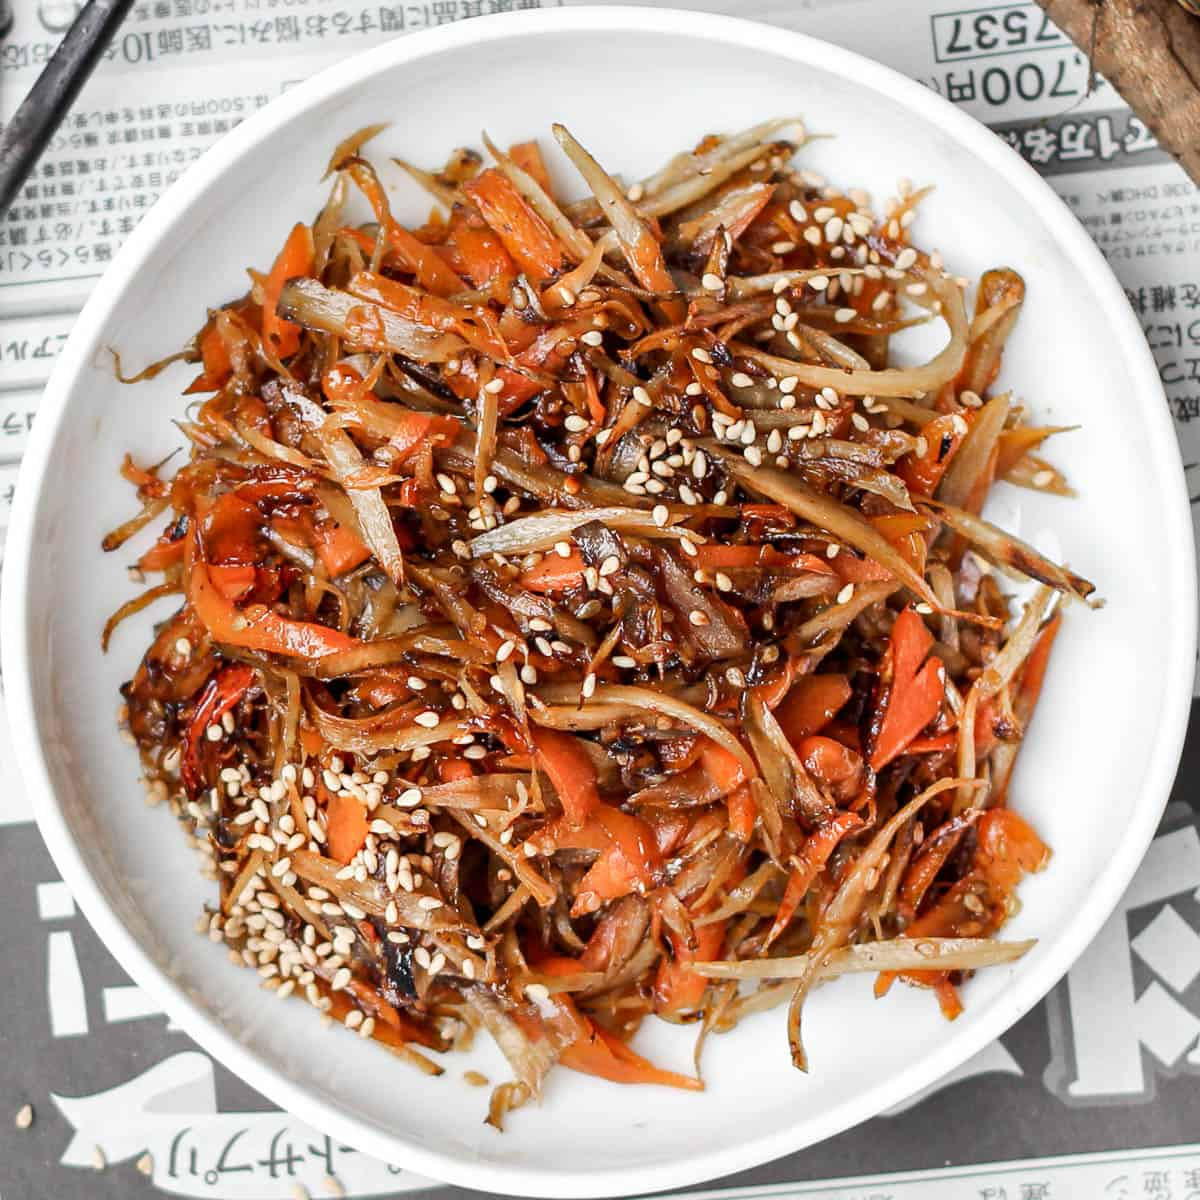 Stir fried carrot and burdock root (kinpira gobo) on a white plate.